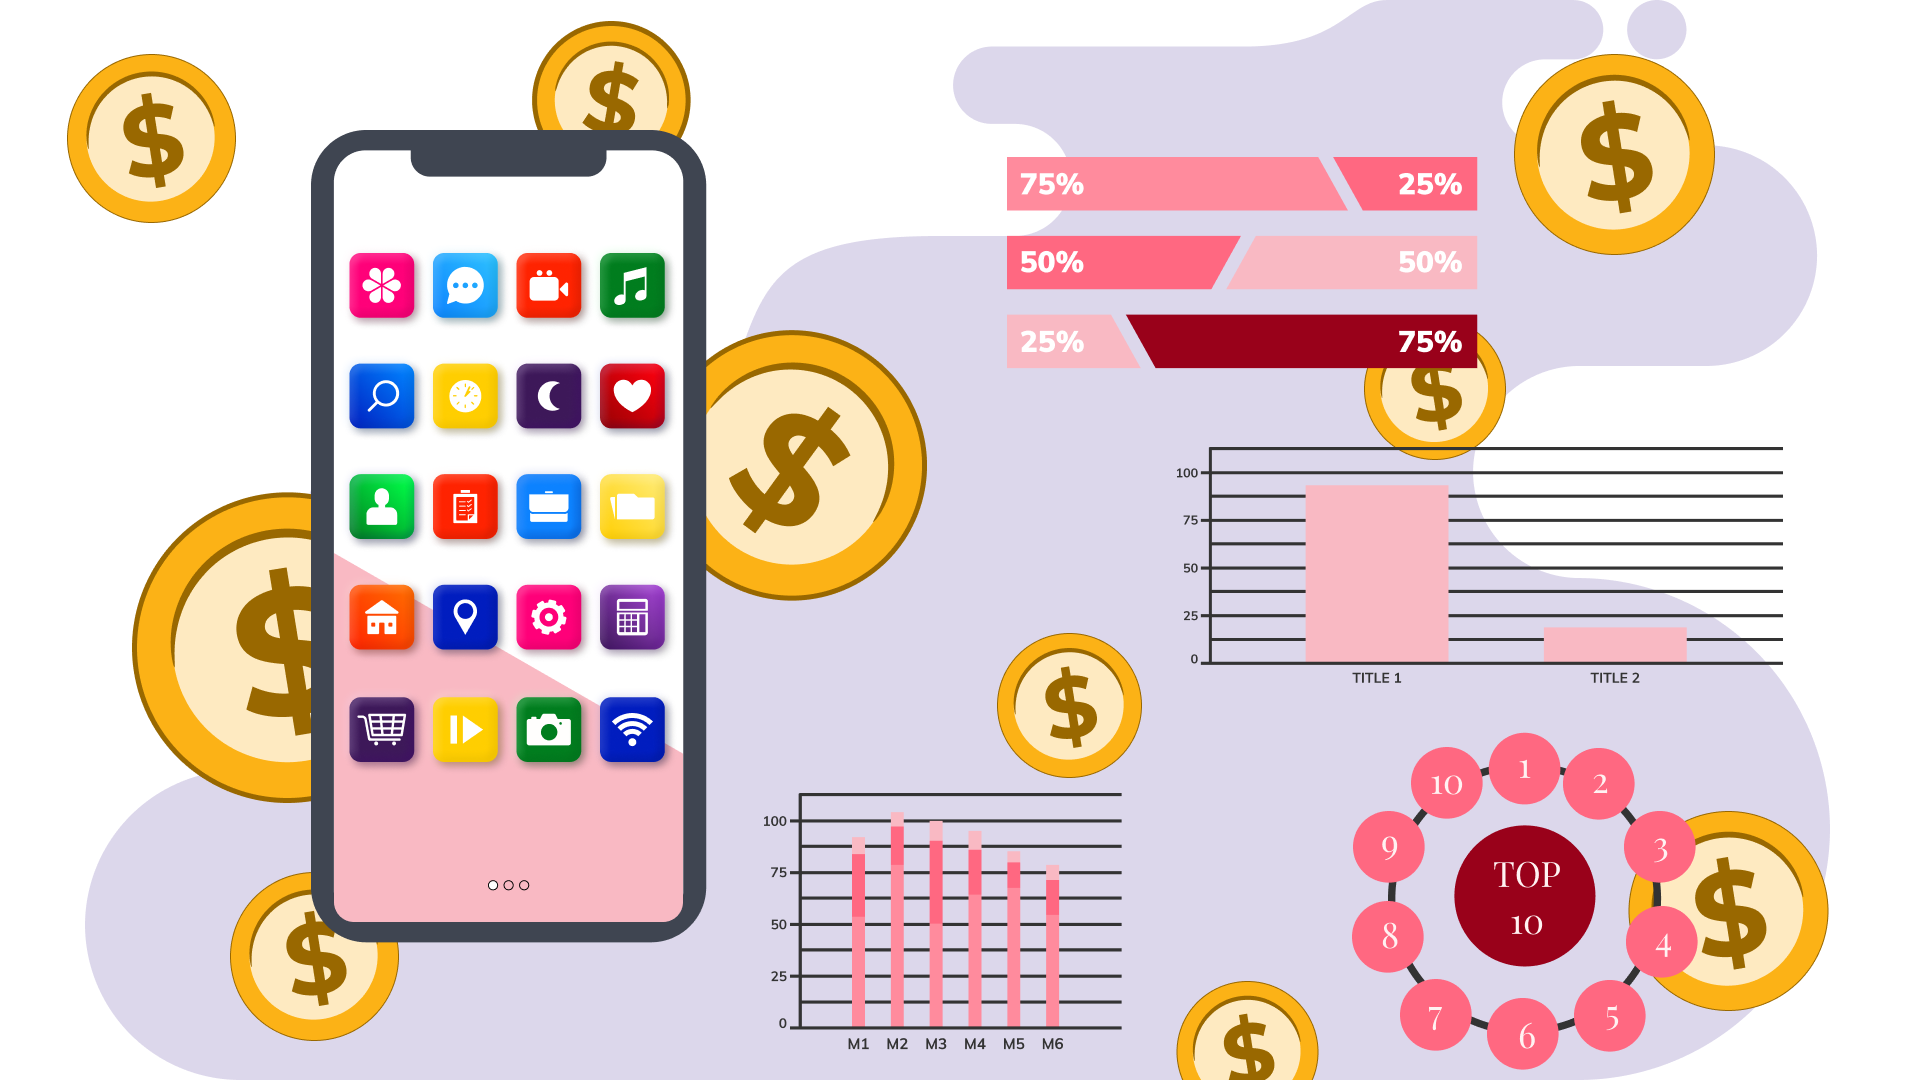 Top 10 Mobile App Monetization Trends for 2020